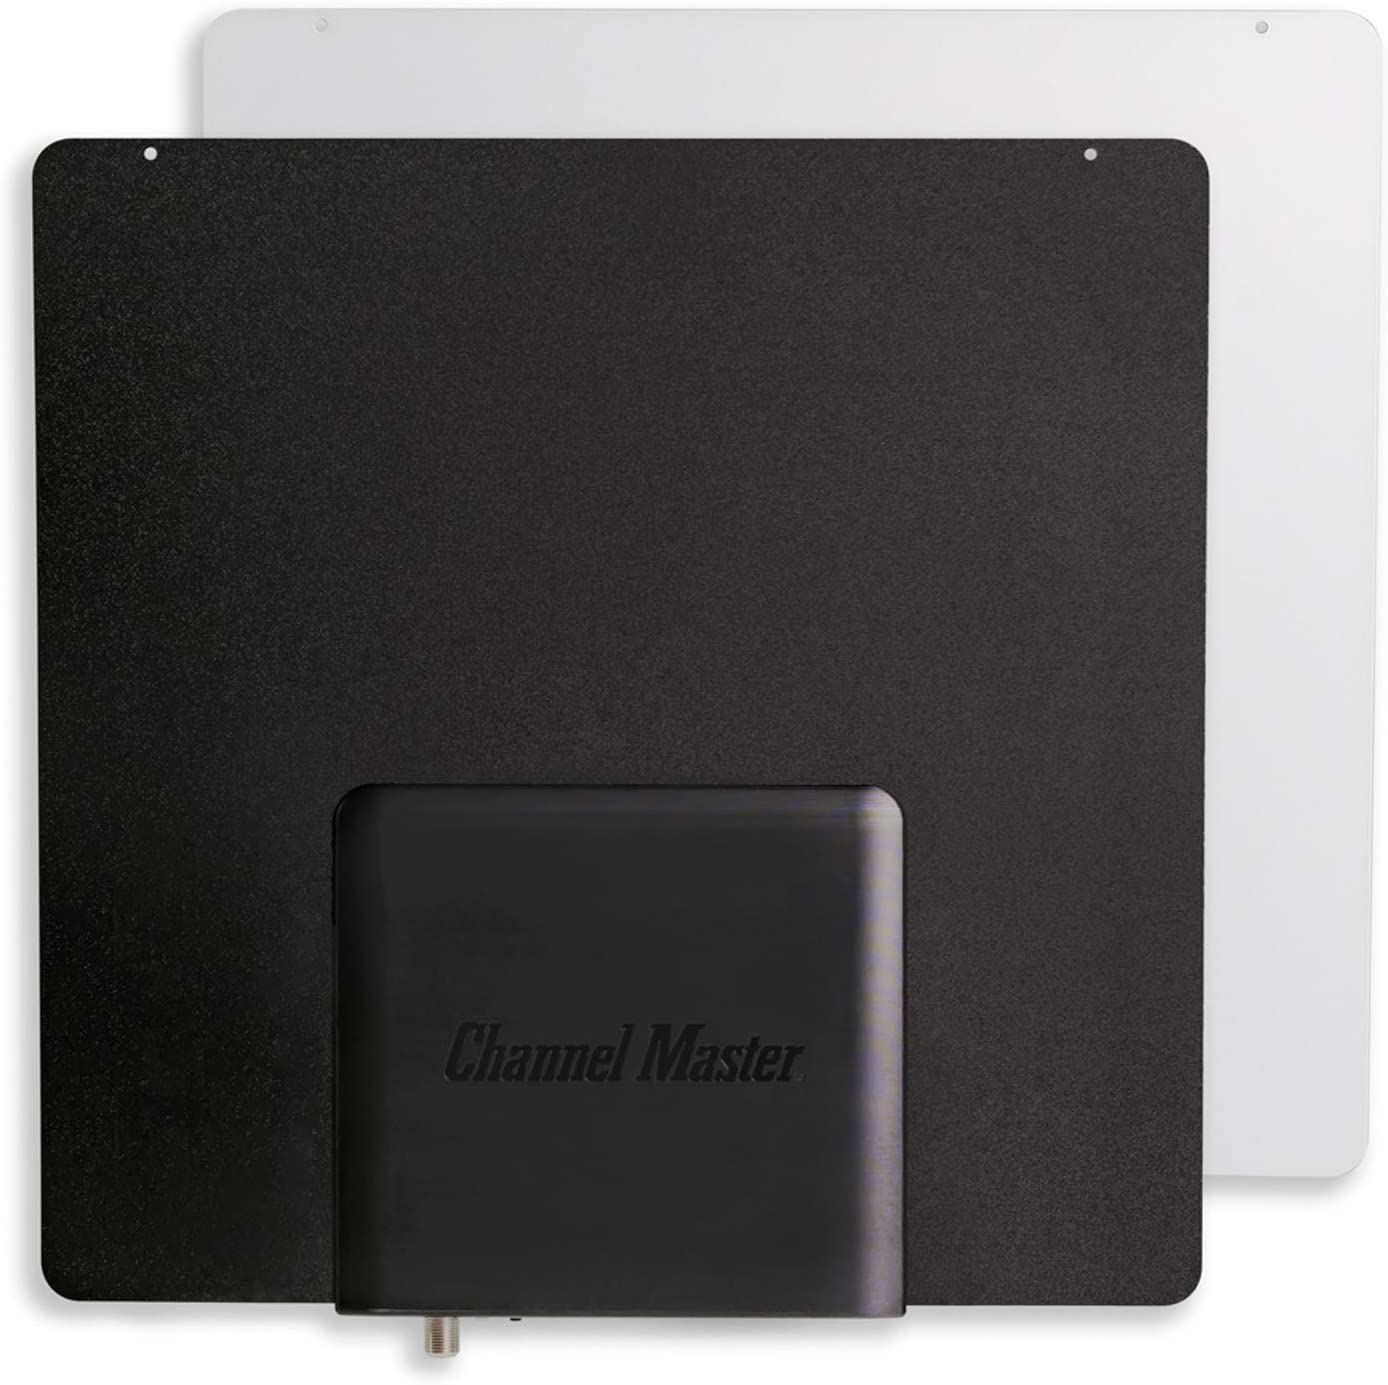 CM3001HD Amplified Indoor TV Antenna with Active Steering Channel Master SMARTenna Reversible Black//White